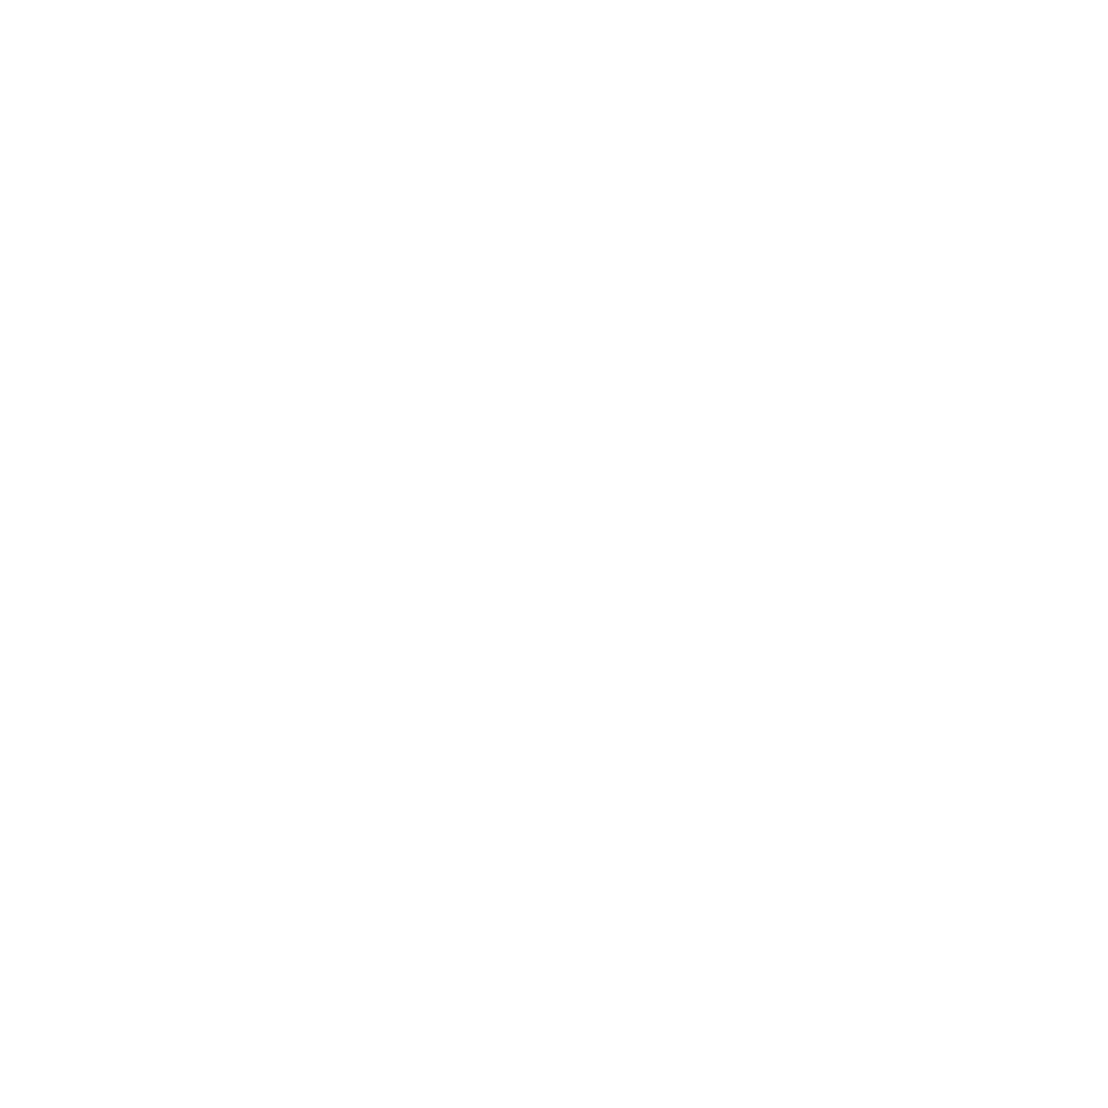 METRONOME MULTIMEDIA